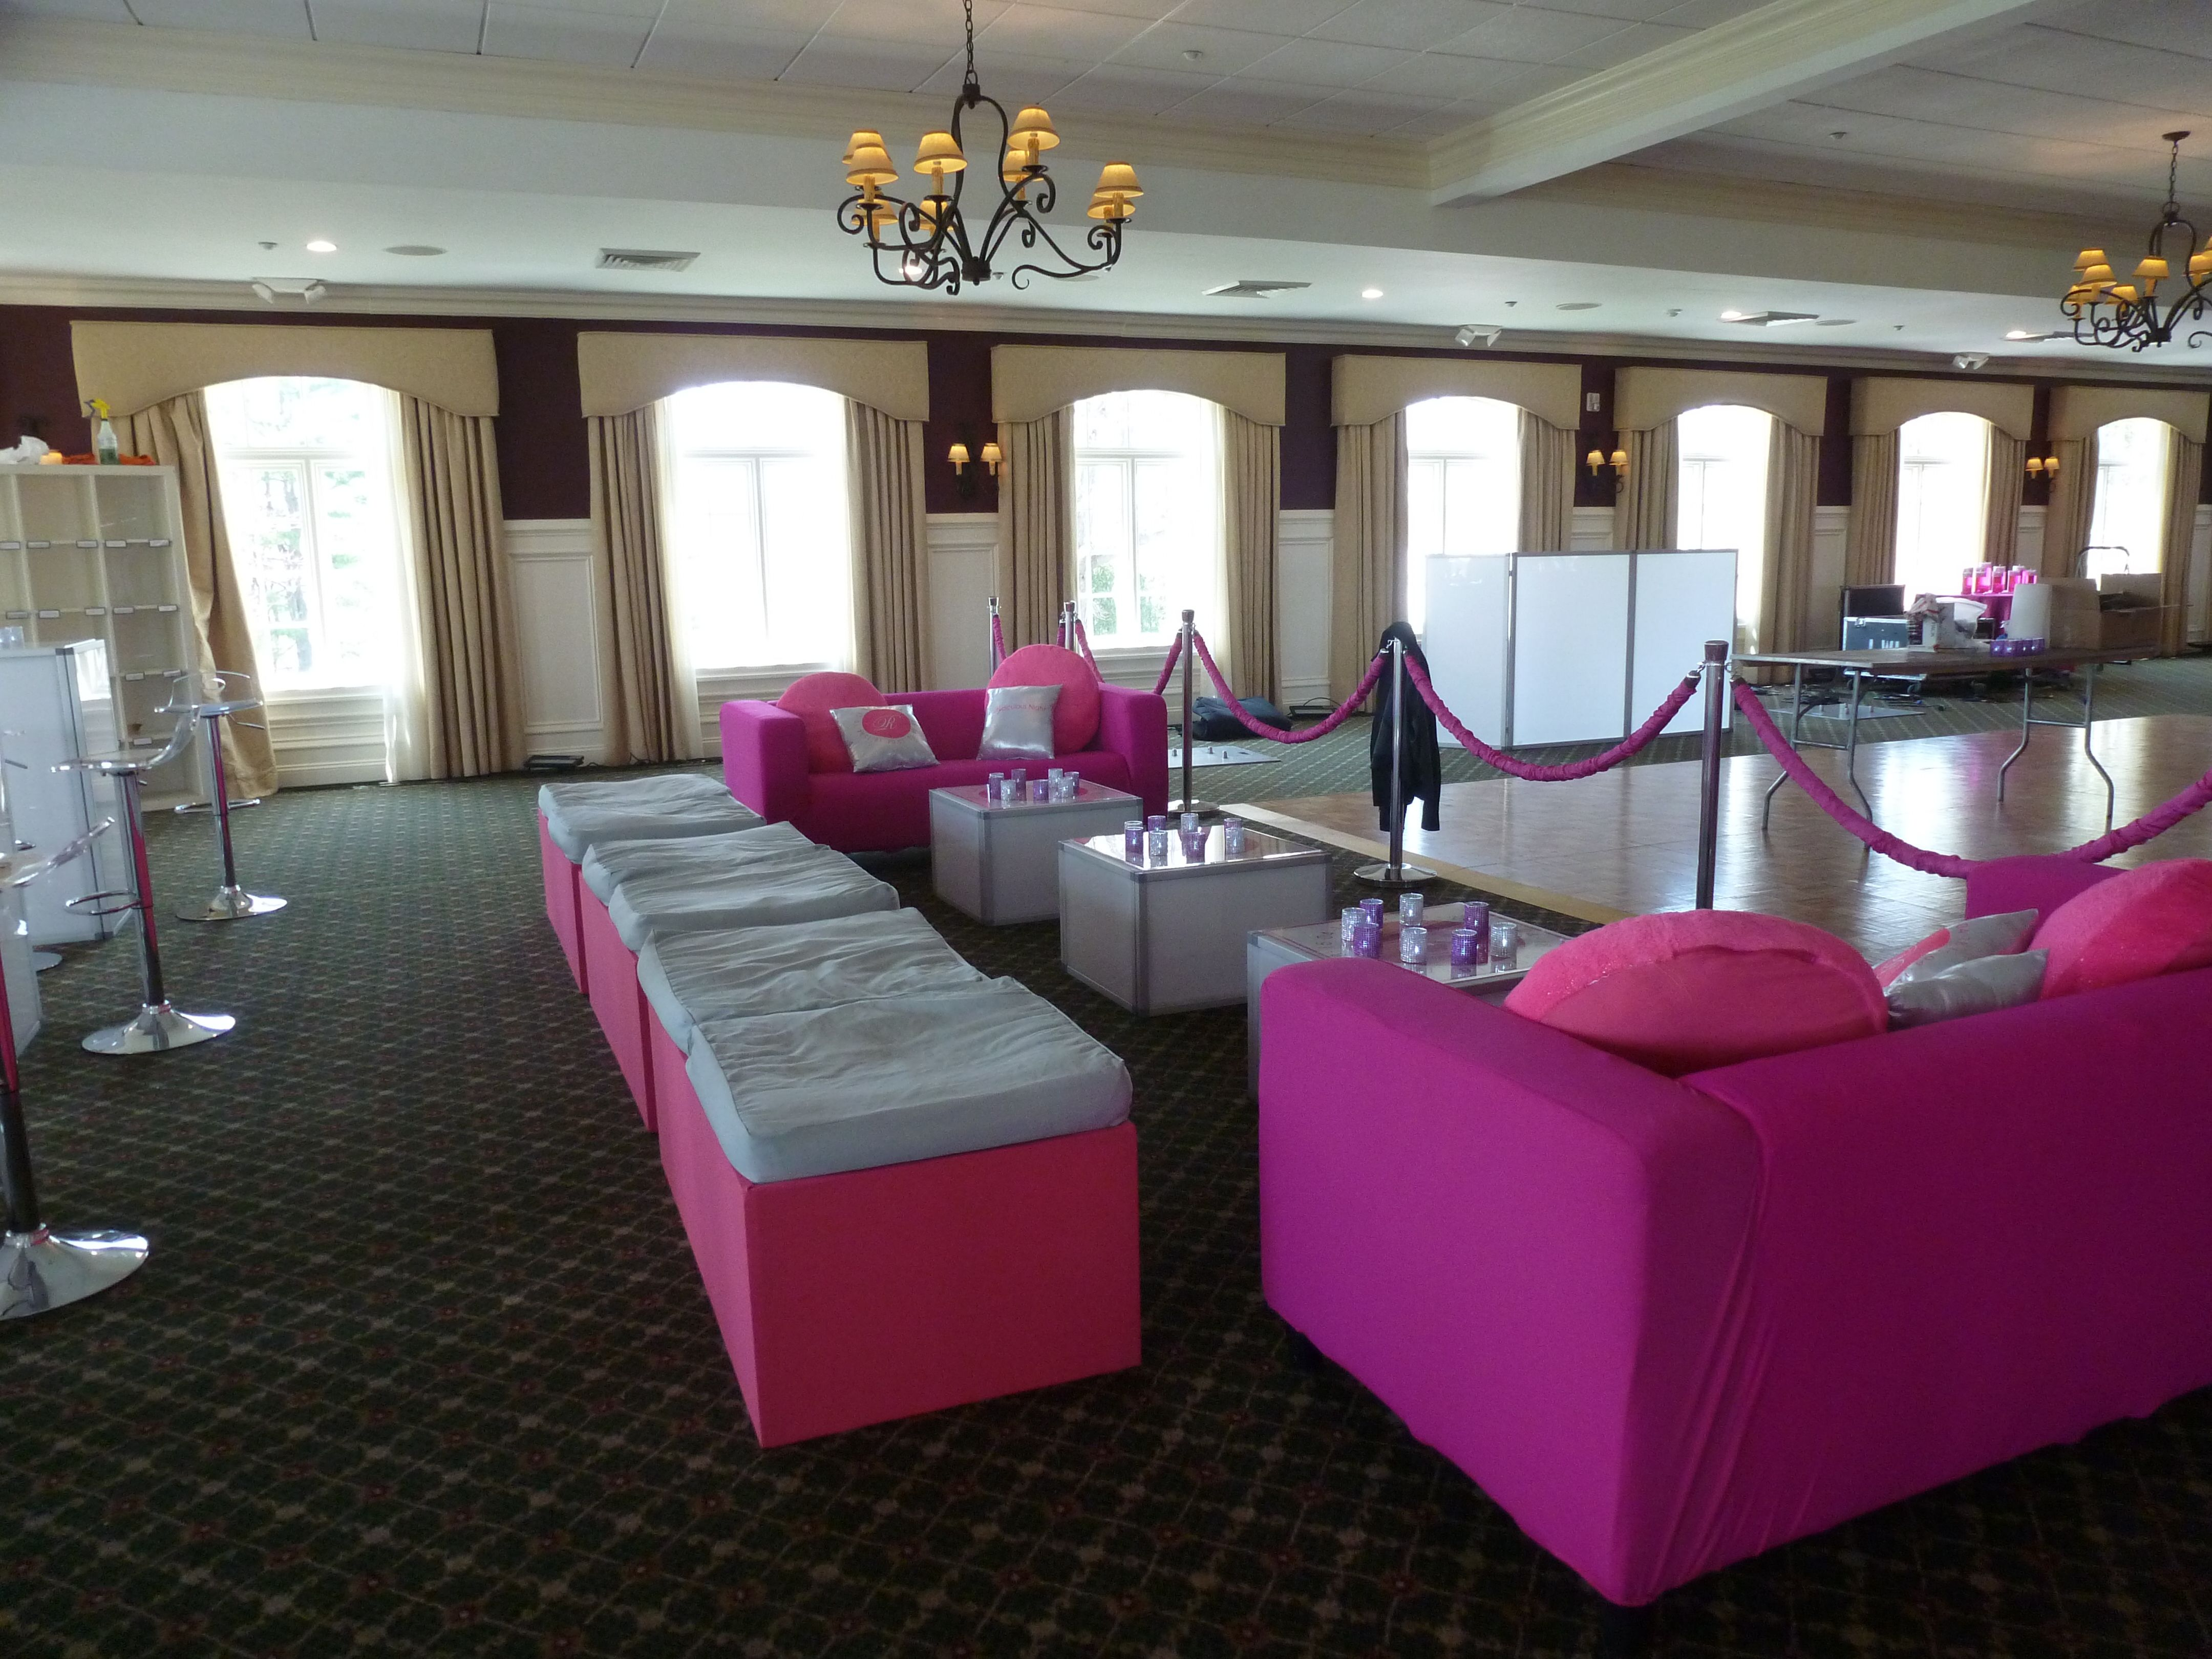 sofa expo vip upholstery pillows hot pink and silver bat mitzvah lounge